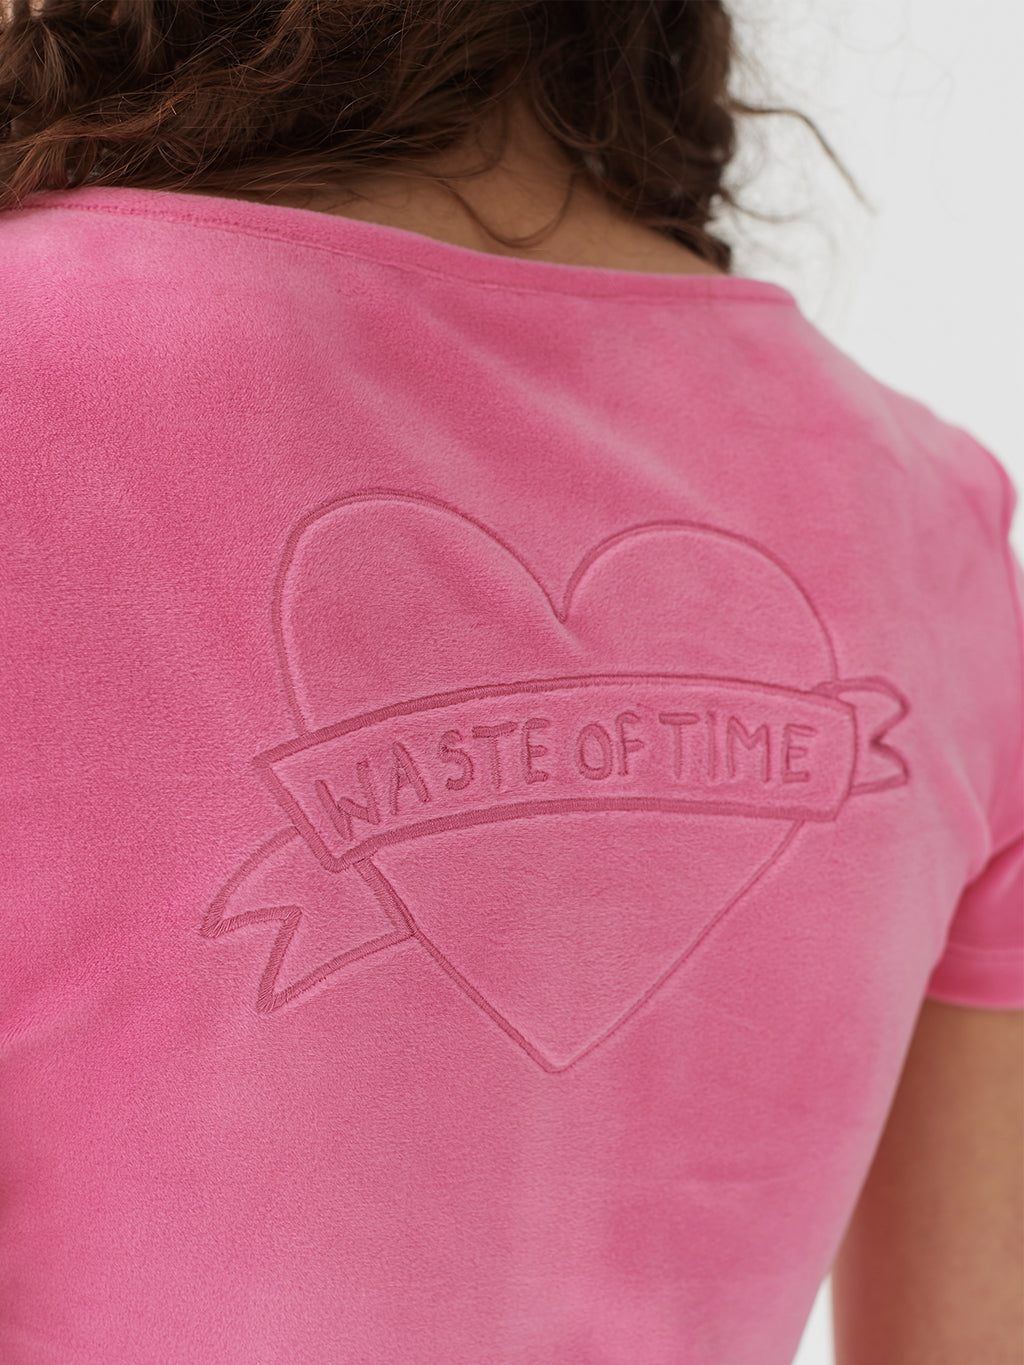 Lazy Oaf Waste Of Time Velour Lounge Top